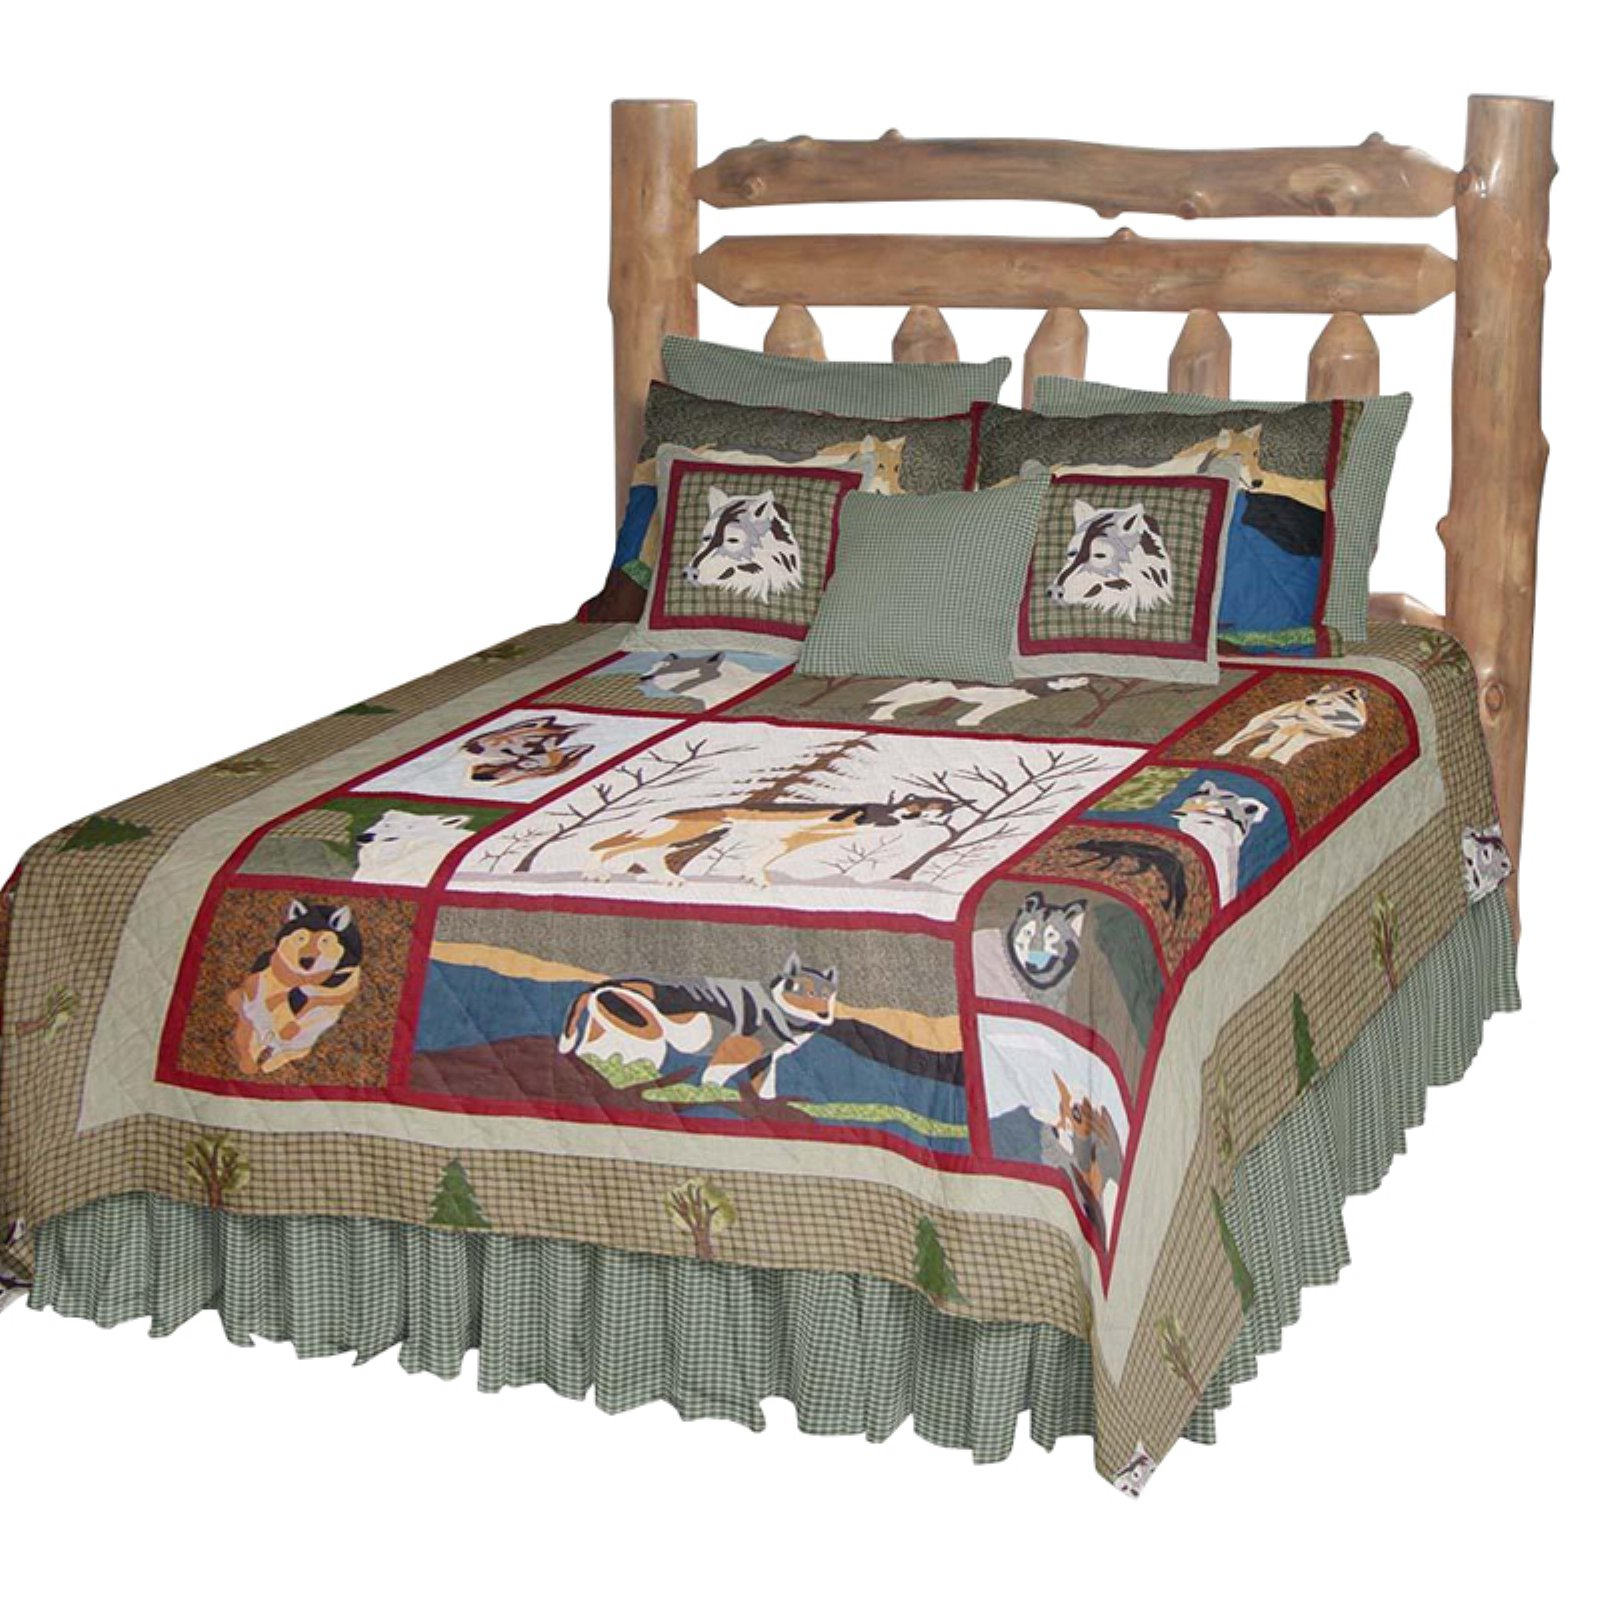 Patch Magic QKCALW Call Of The Wild, Quilt King 105 x 95 inch